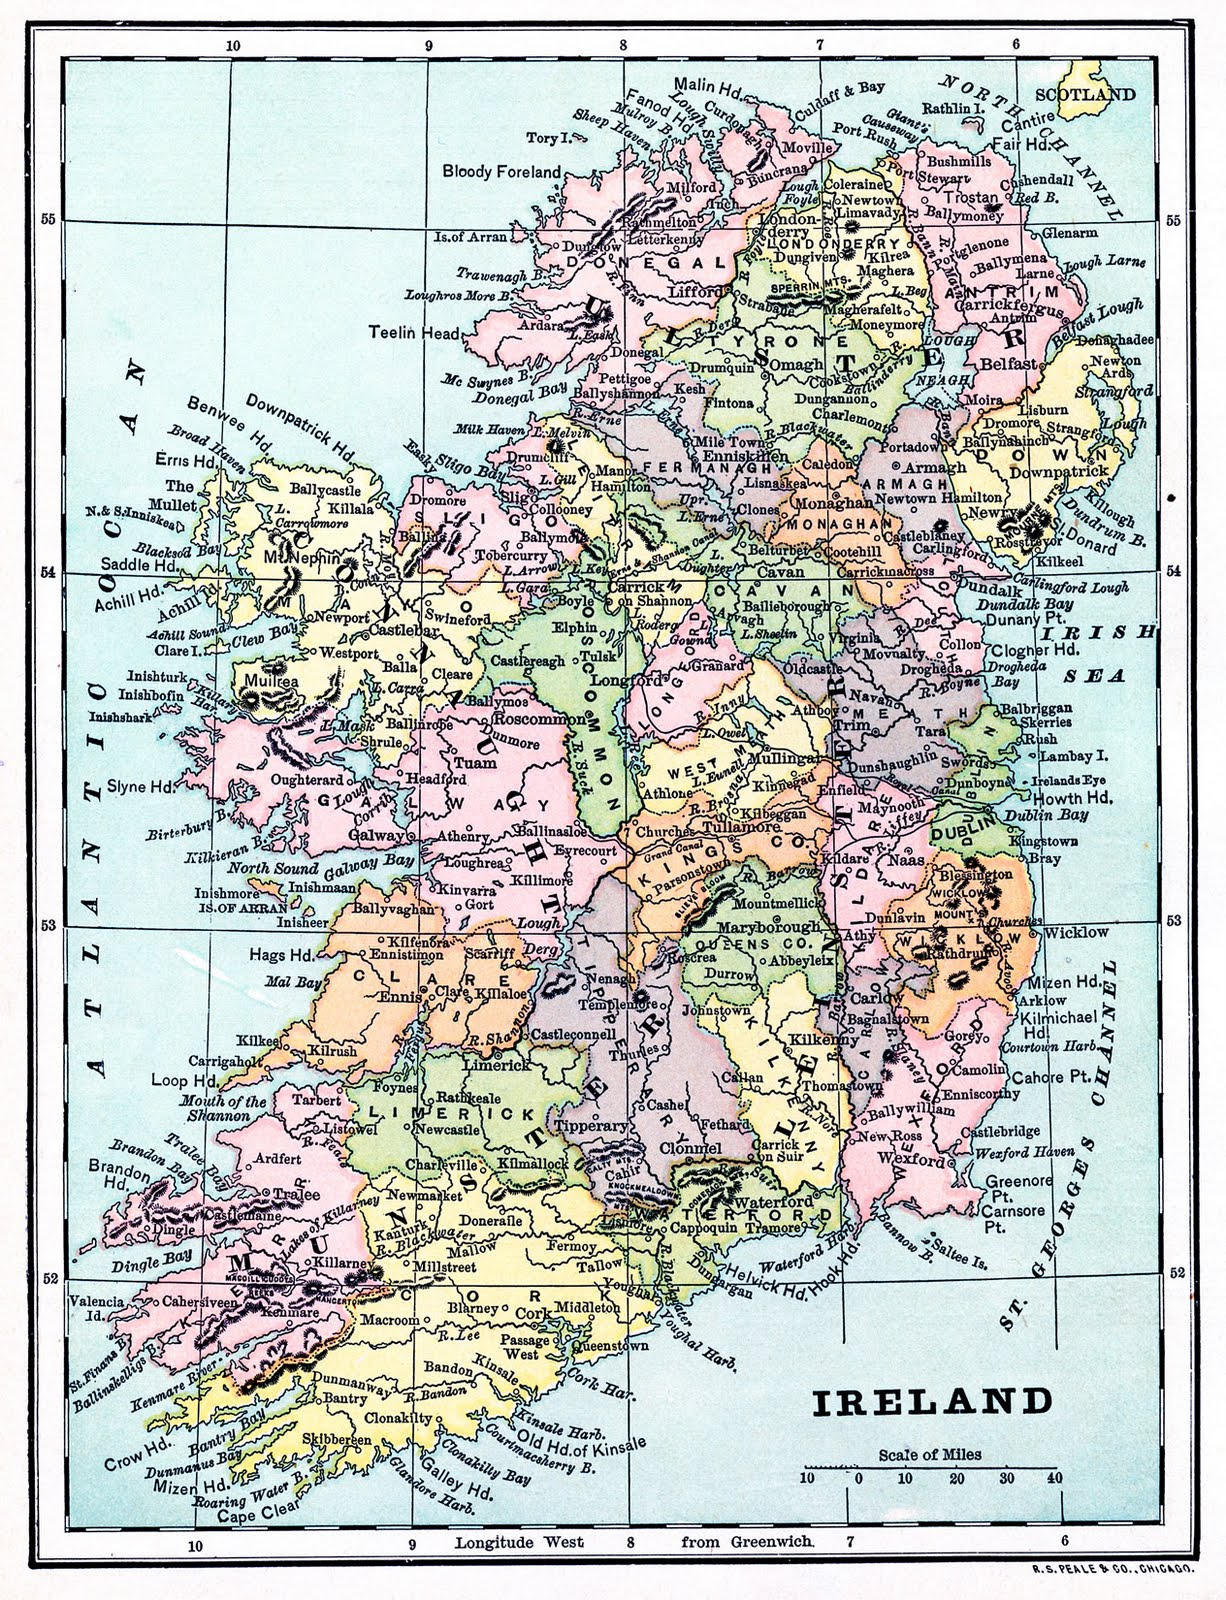 Clipart maps of ireland in public domain picture free Instant Art Printable - Map of Ireland - The Graphics Fairy picture free